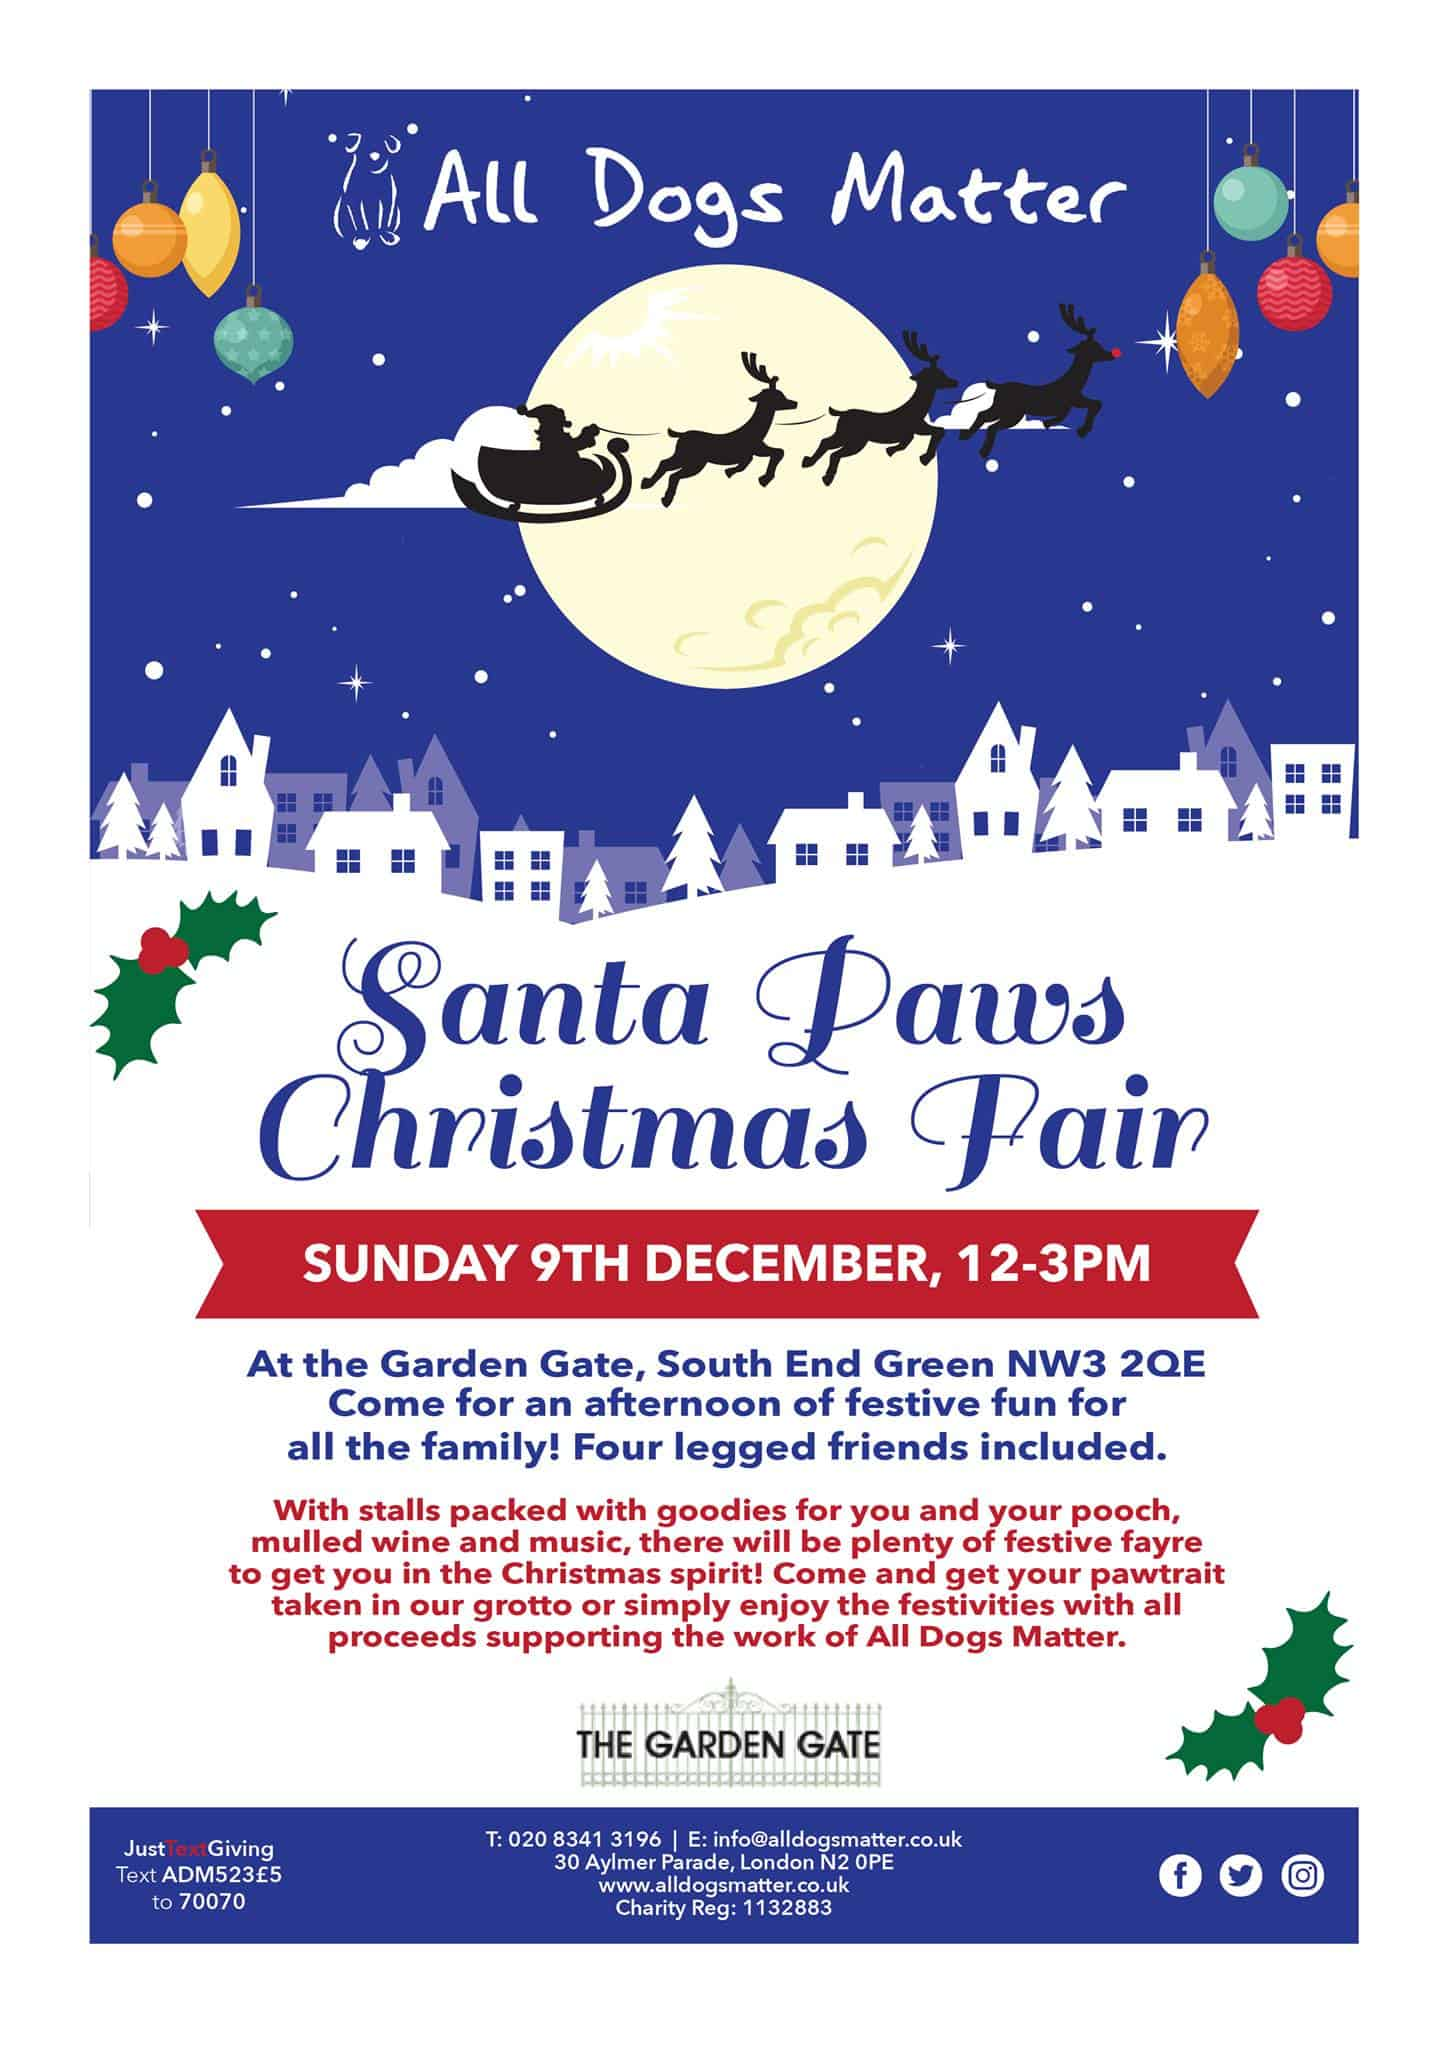 All Dogs Matter Santa Paws Christmas Fair 2018 Event